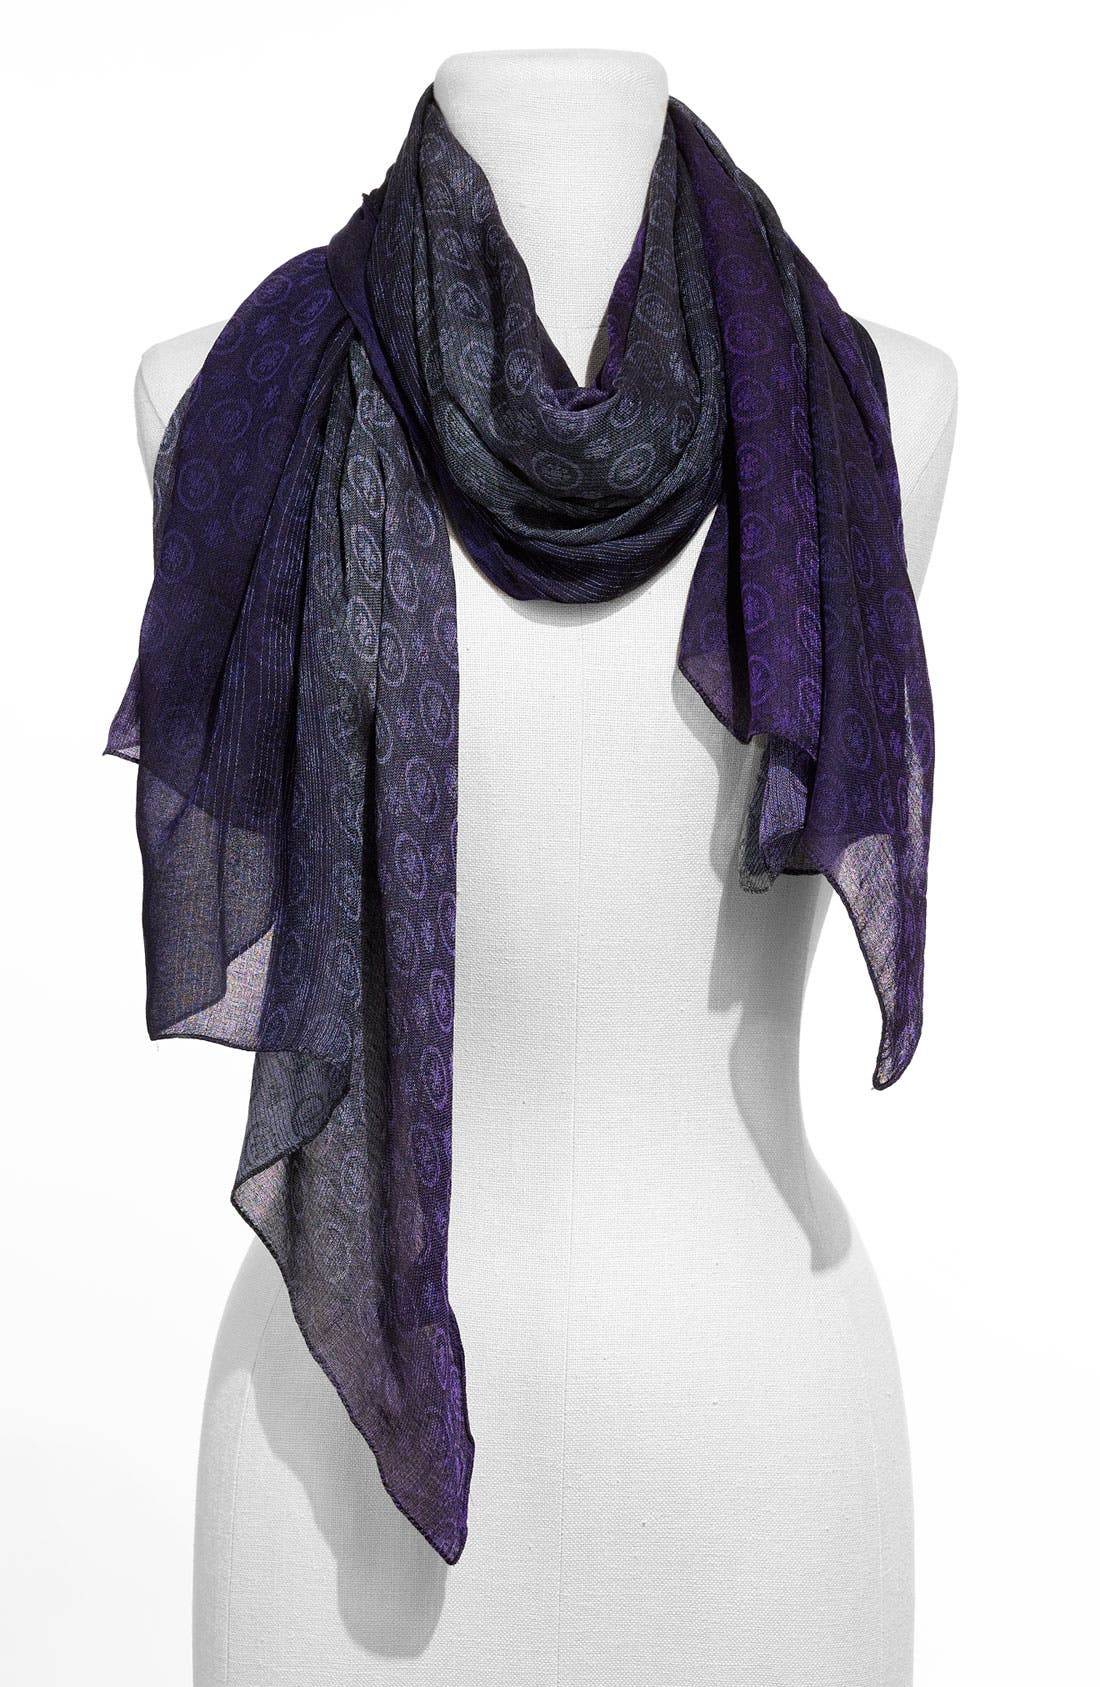 Alternate Image 1 Selected - Nordstrom Collection Patterned Ombré Scarf